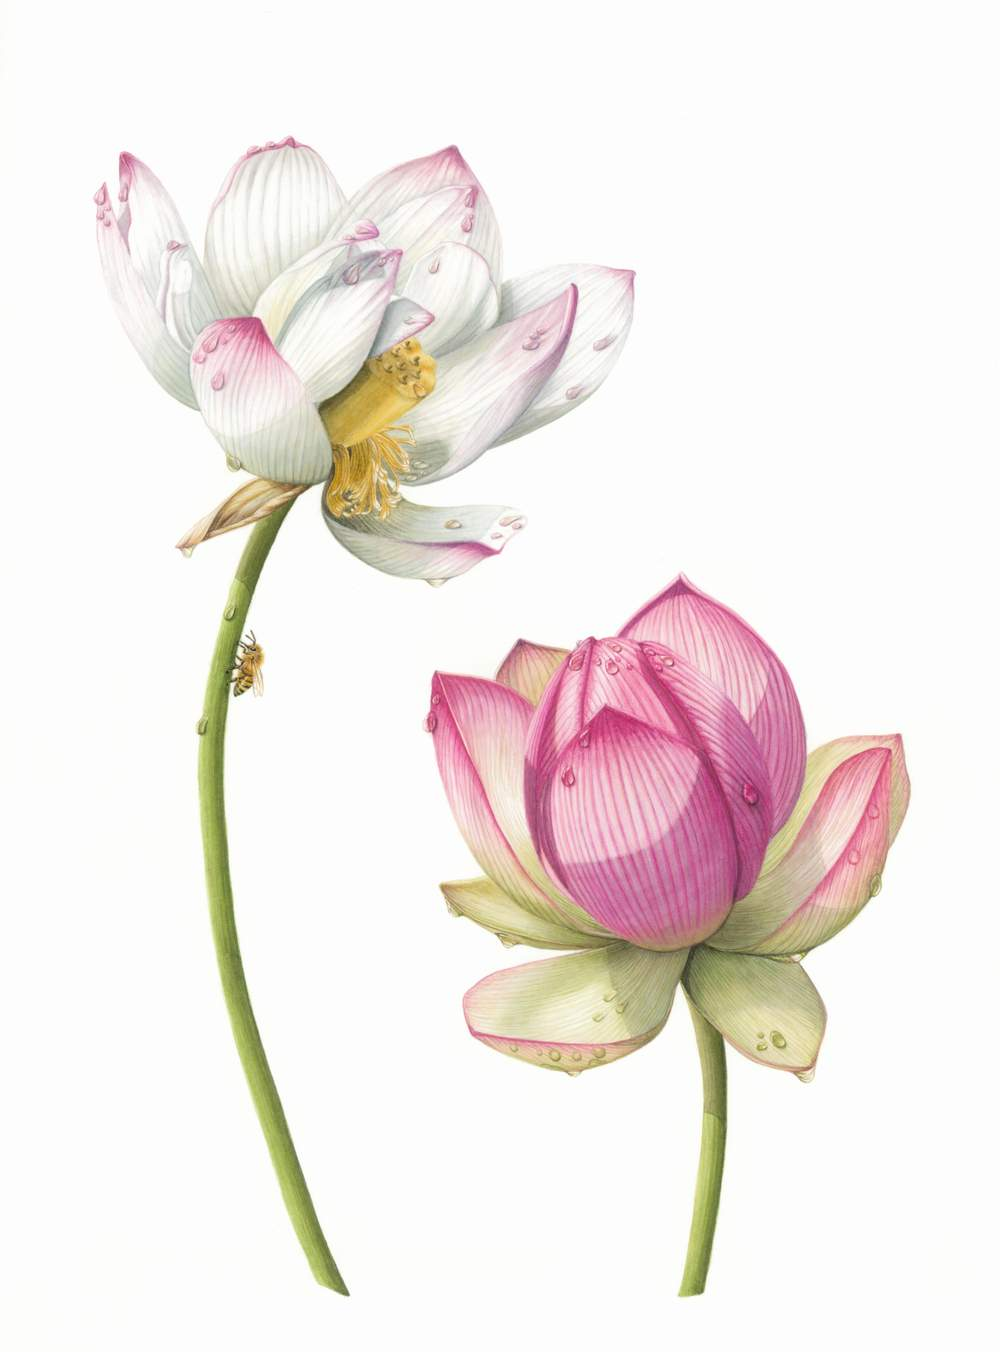 "Nelumbo nucifera var. unknown.  - Lotus Flower Apis mellifera - European Honey Bee Watercolour 11"" x 16"""